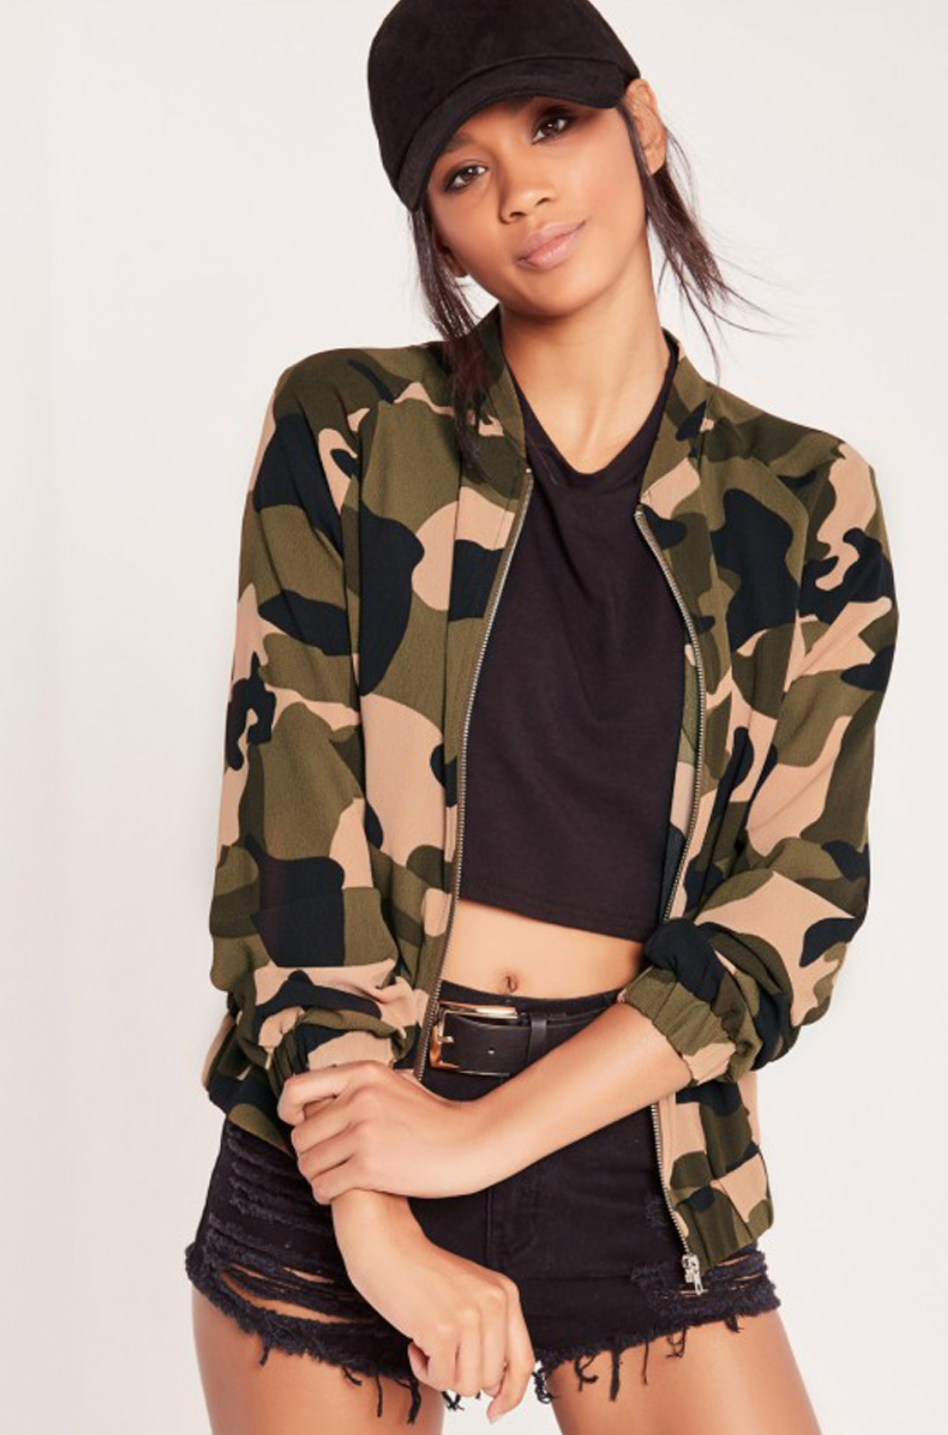 Too fly camo bomber